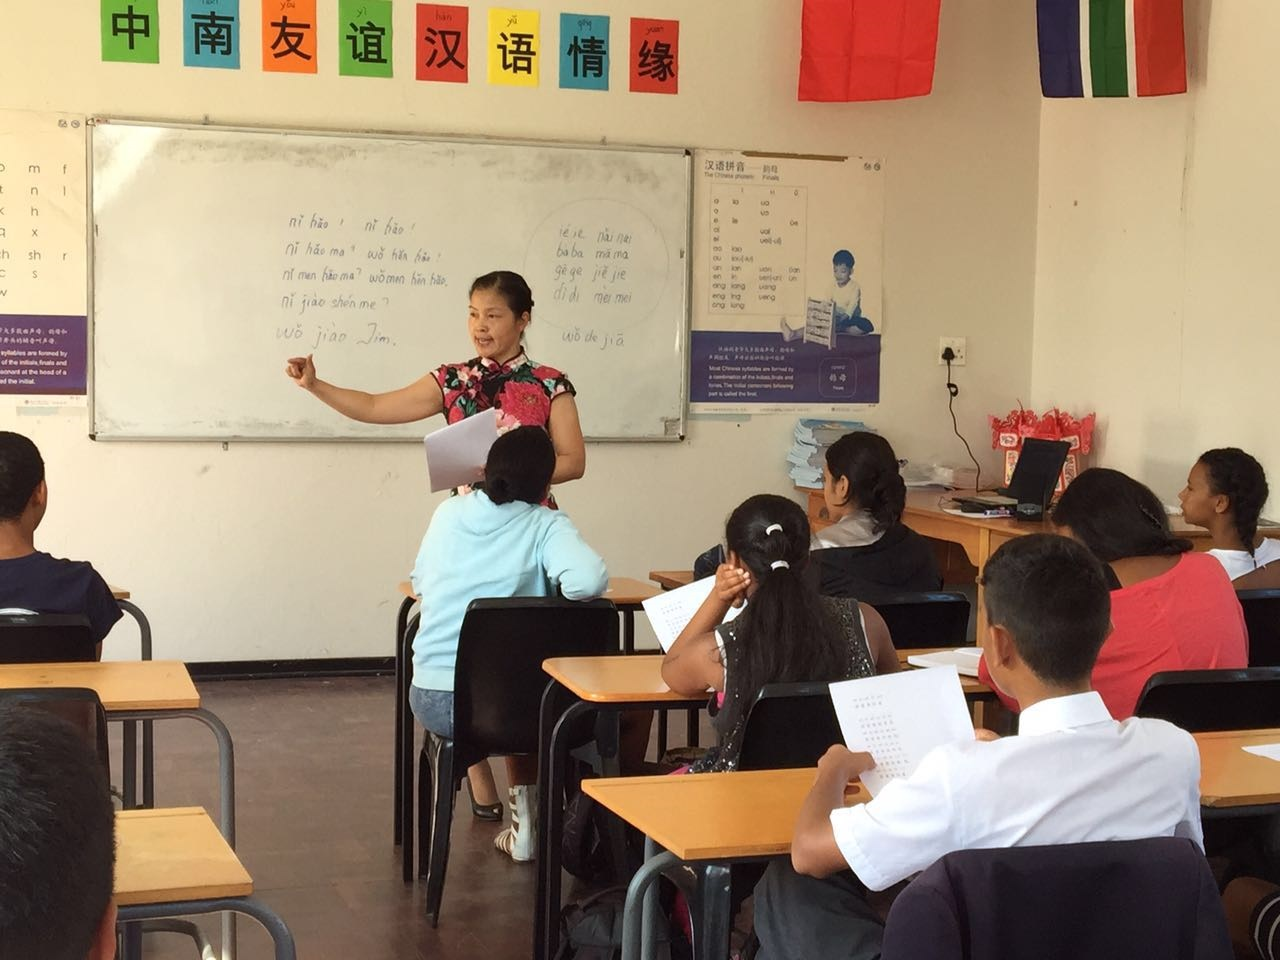 Confucius Classroom of CAMST Grade 9 Chinese Class by teacher Ms. Wang Meixiu  开普数学科技学院九年级中文课 王梅秀老师